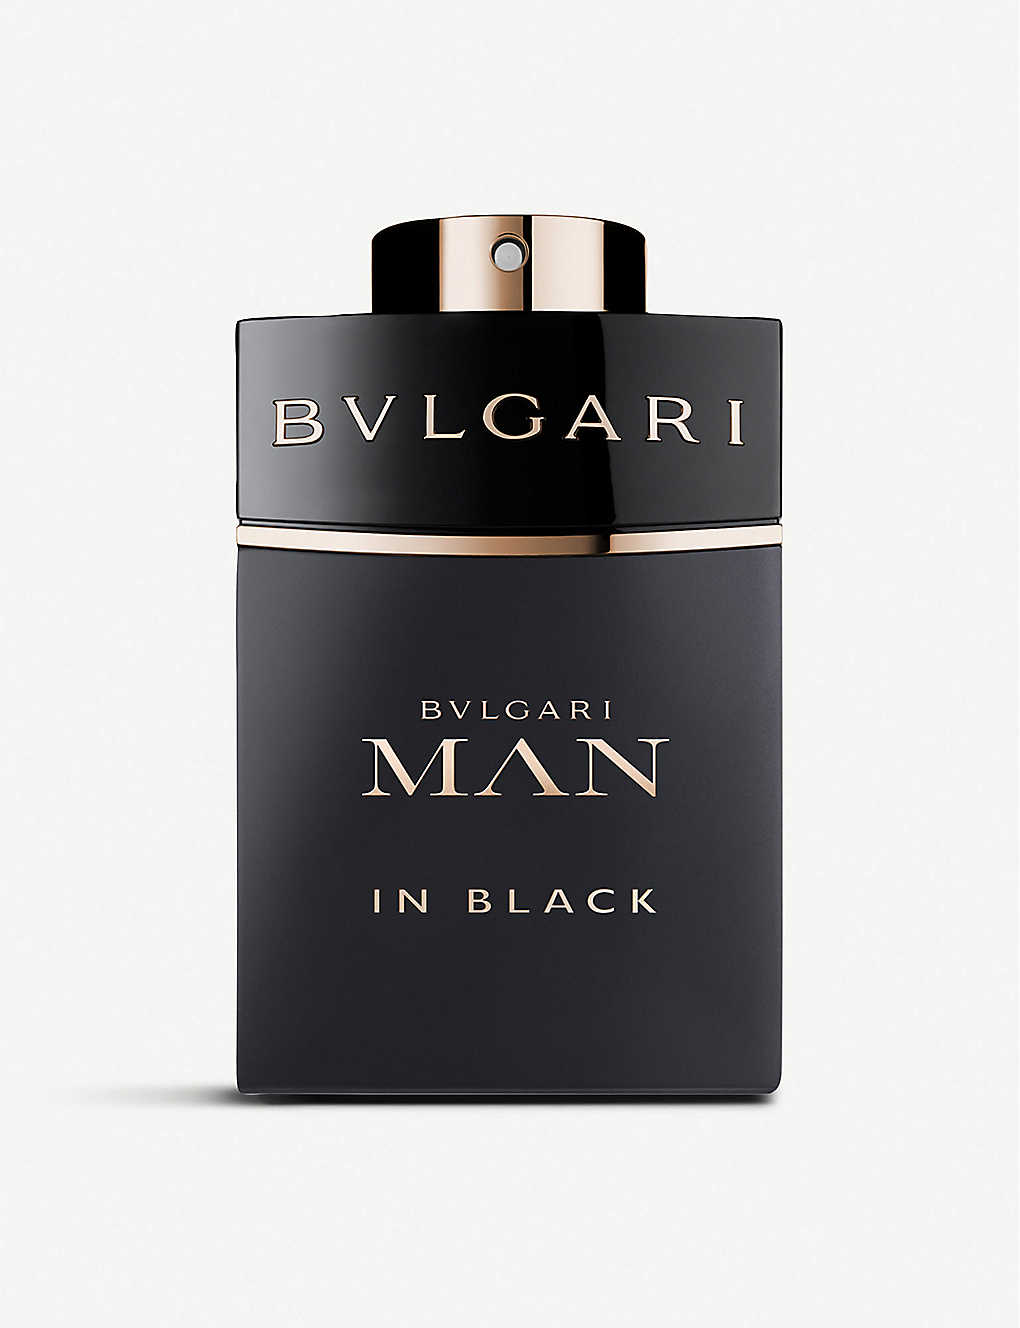 BVLGARI: Man In Black eau de parfum 60ml